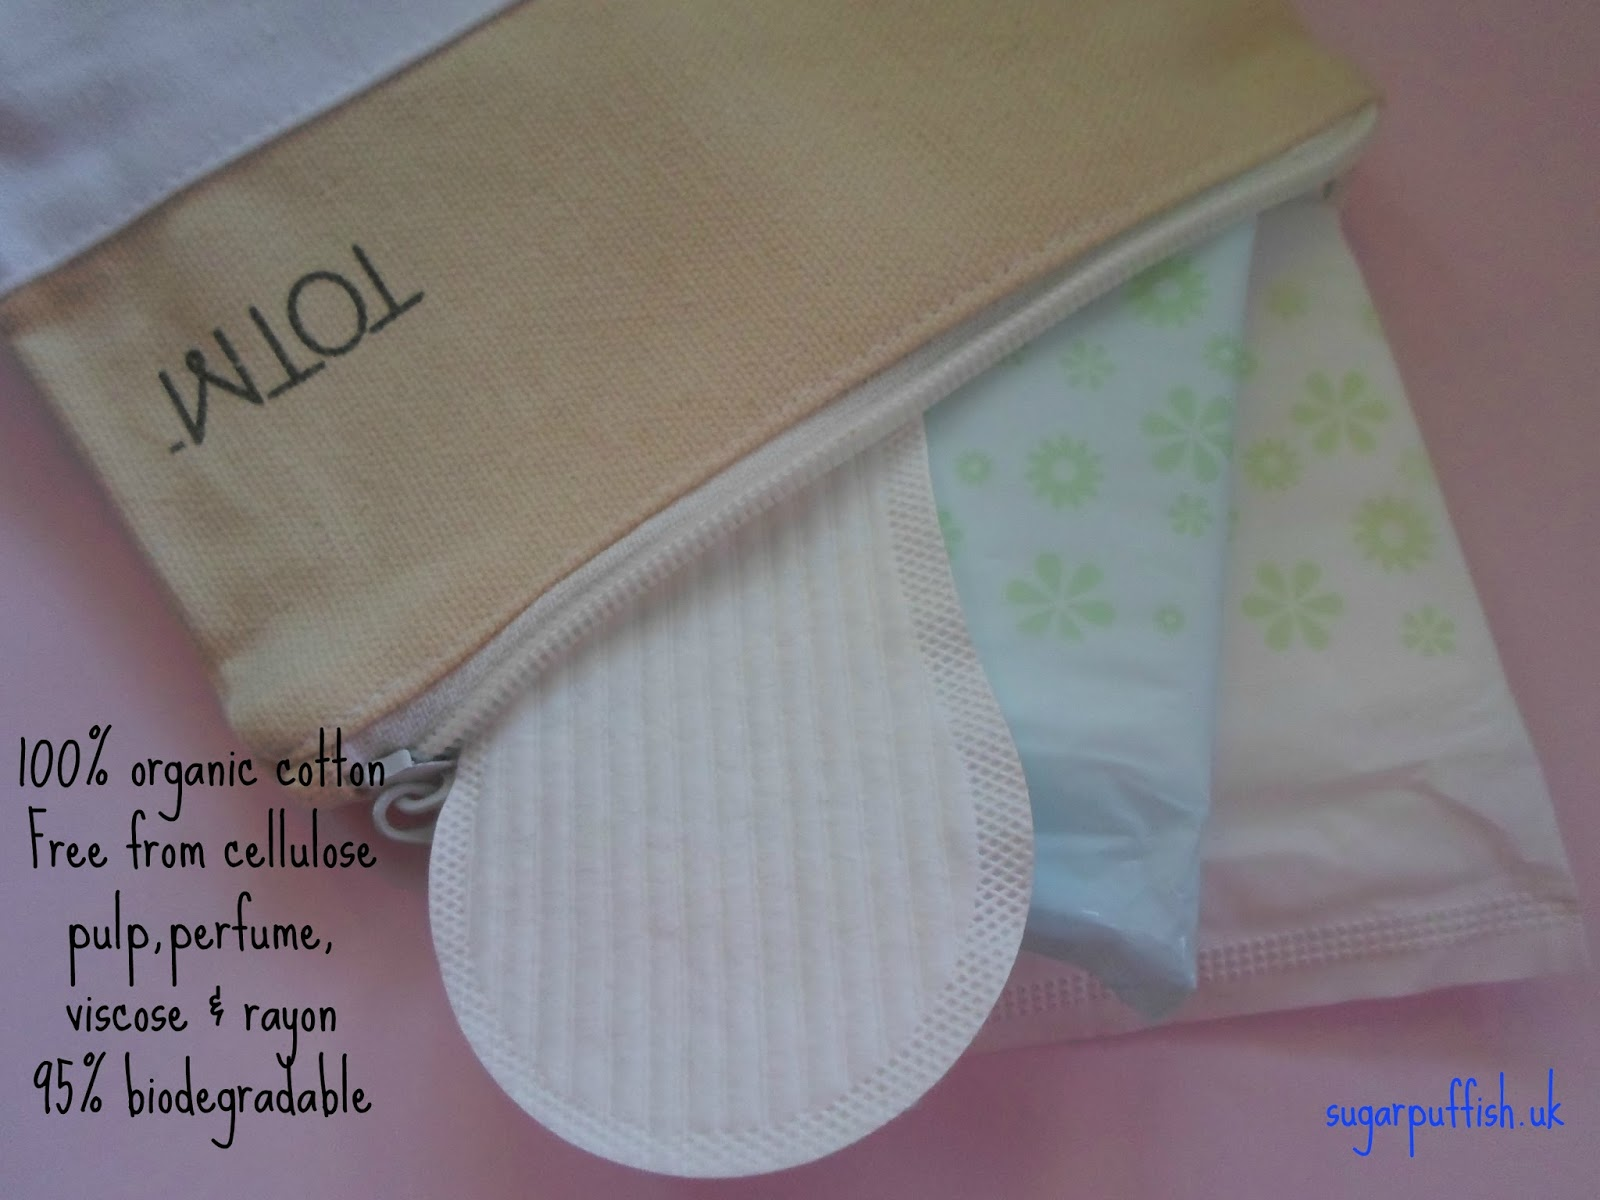 TOTM organic cotton sanitary products